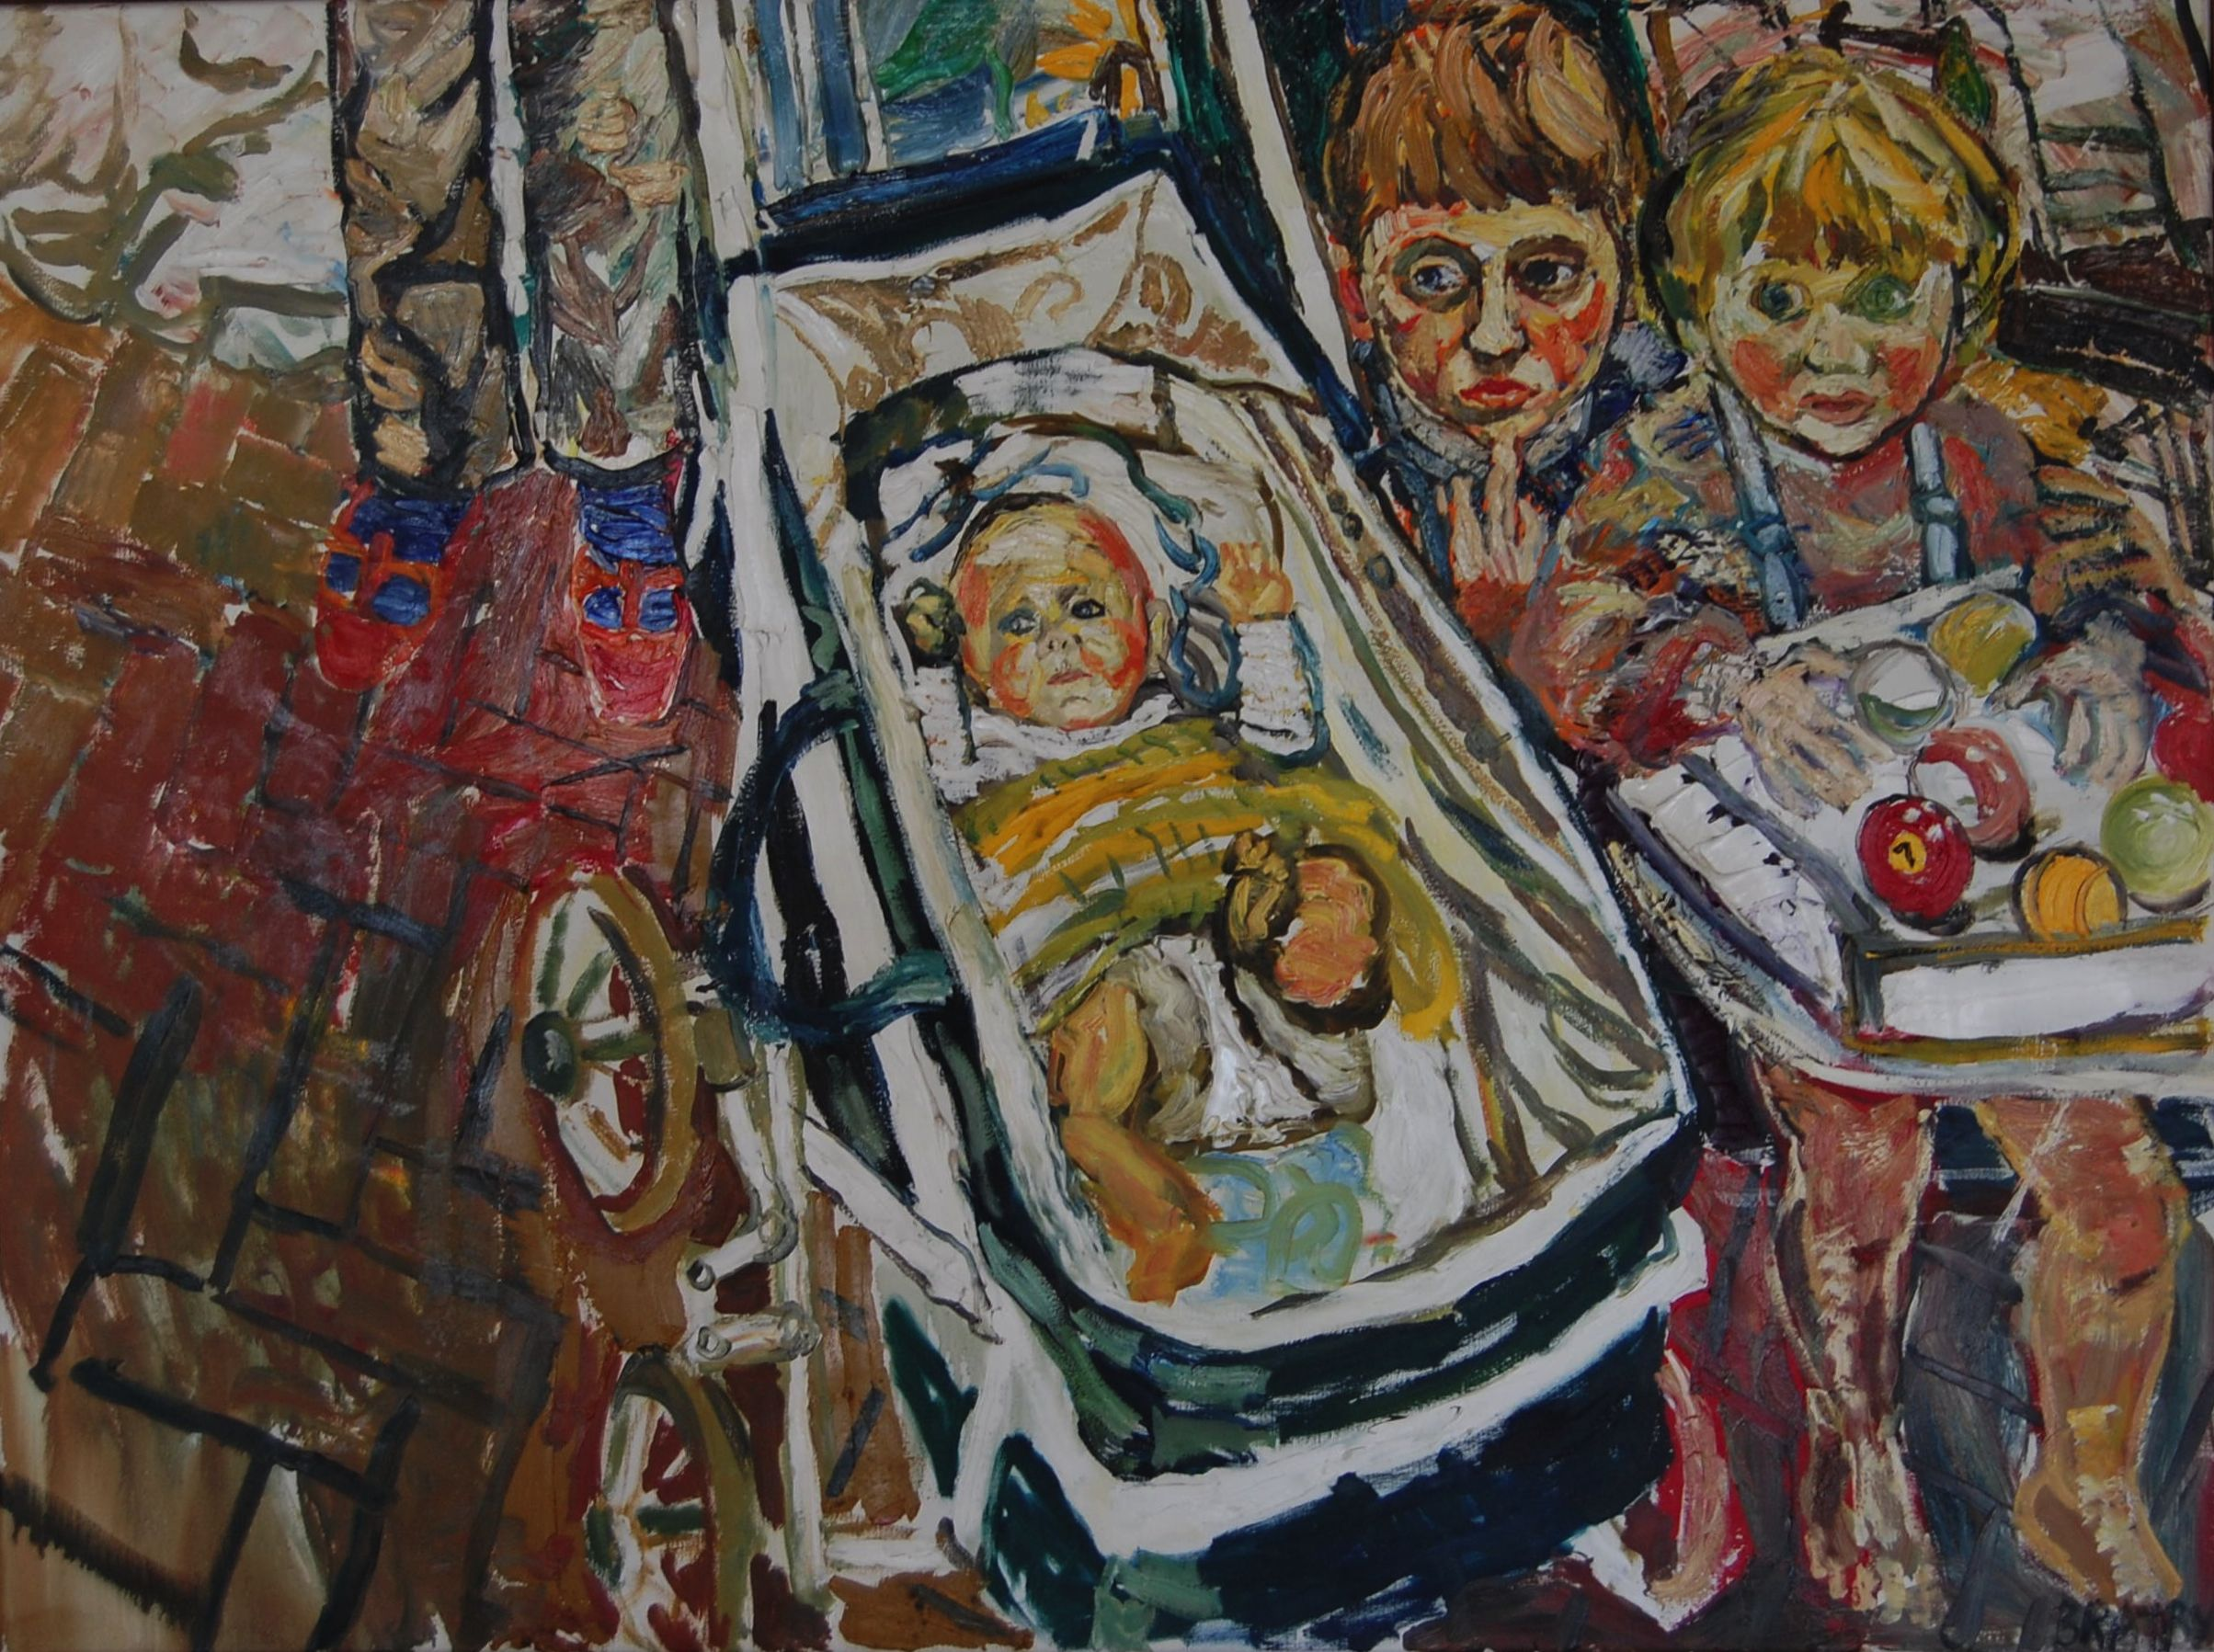 John Bratby Kitchen Sink Art